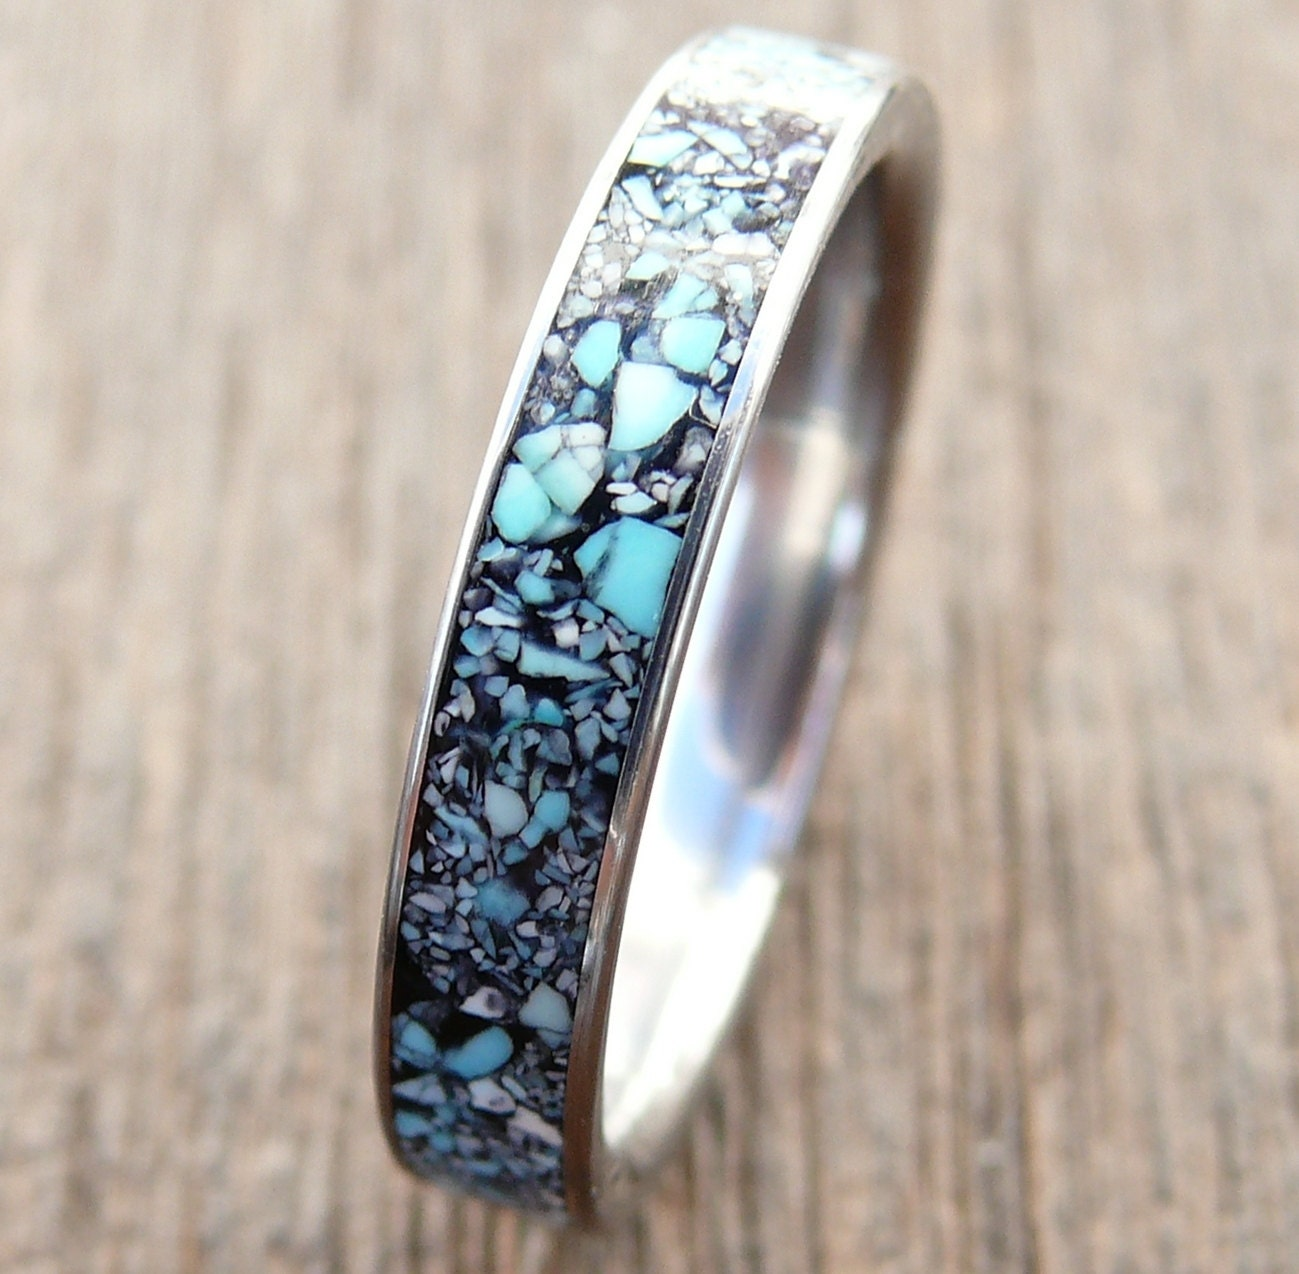 Titanium Ring With Turquoise Stone Wedding Ring Engagement. Imperfect Engagement Rings. Sacramento Kings Rings. Small Rectangle Wedding Rings. Curtain Rings. 0.63 Carat Engagement Rings. Common Wedding Wedding Rings. Ideal Wedding Engagement Rings. Nine Rings